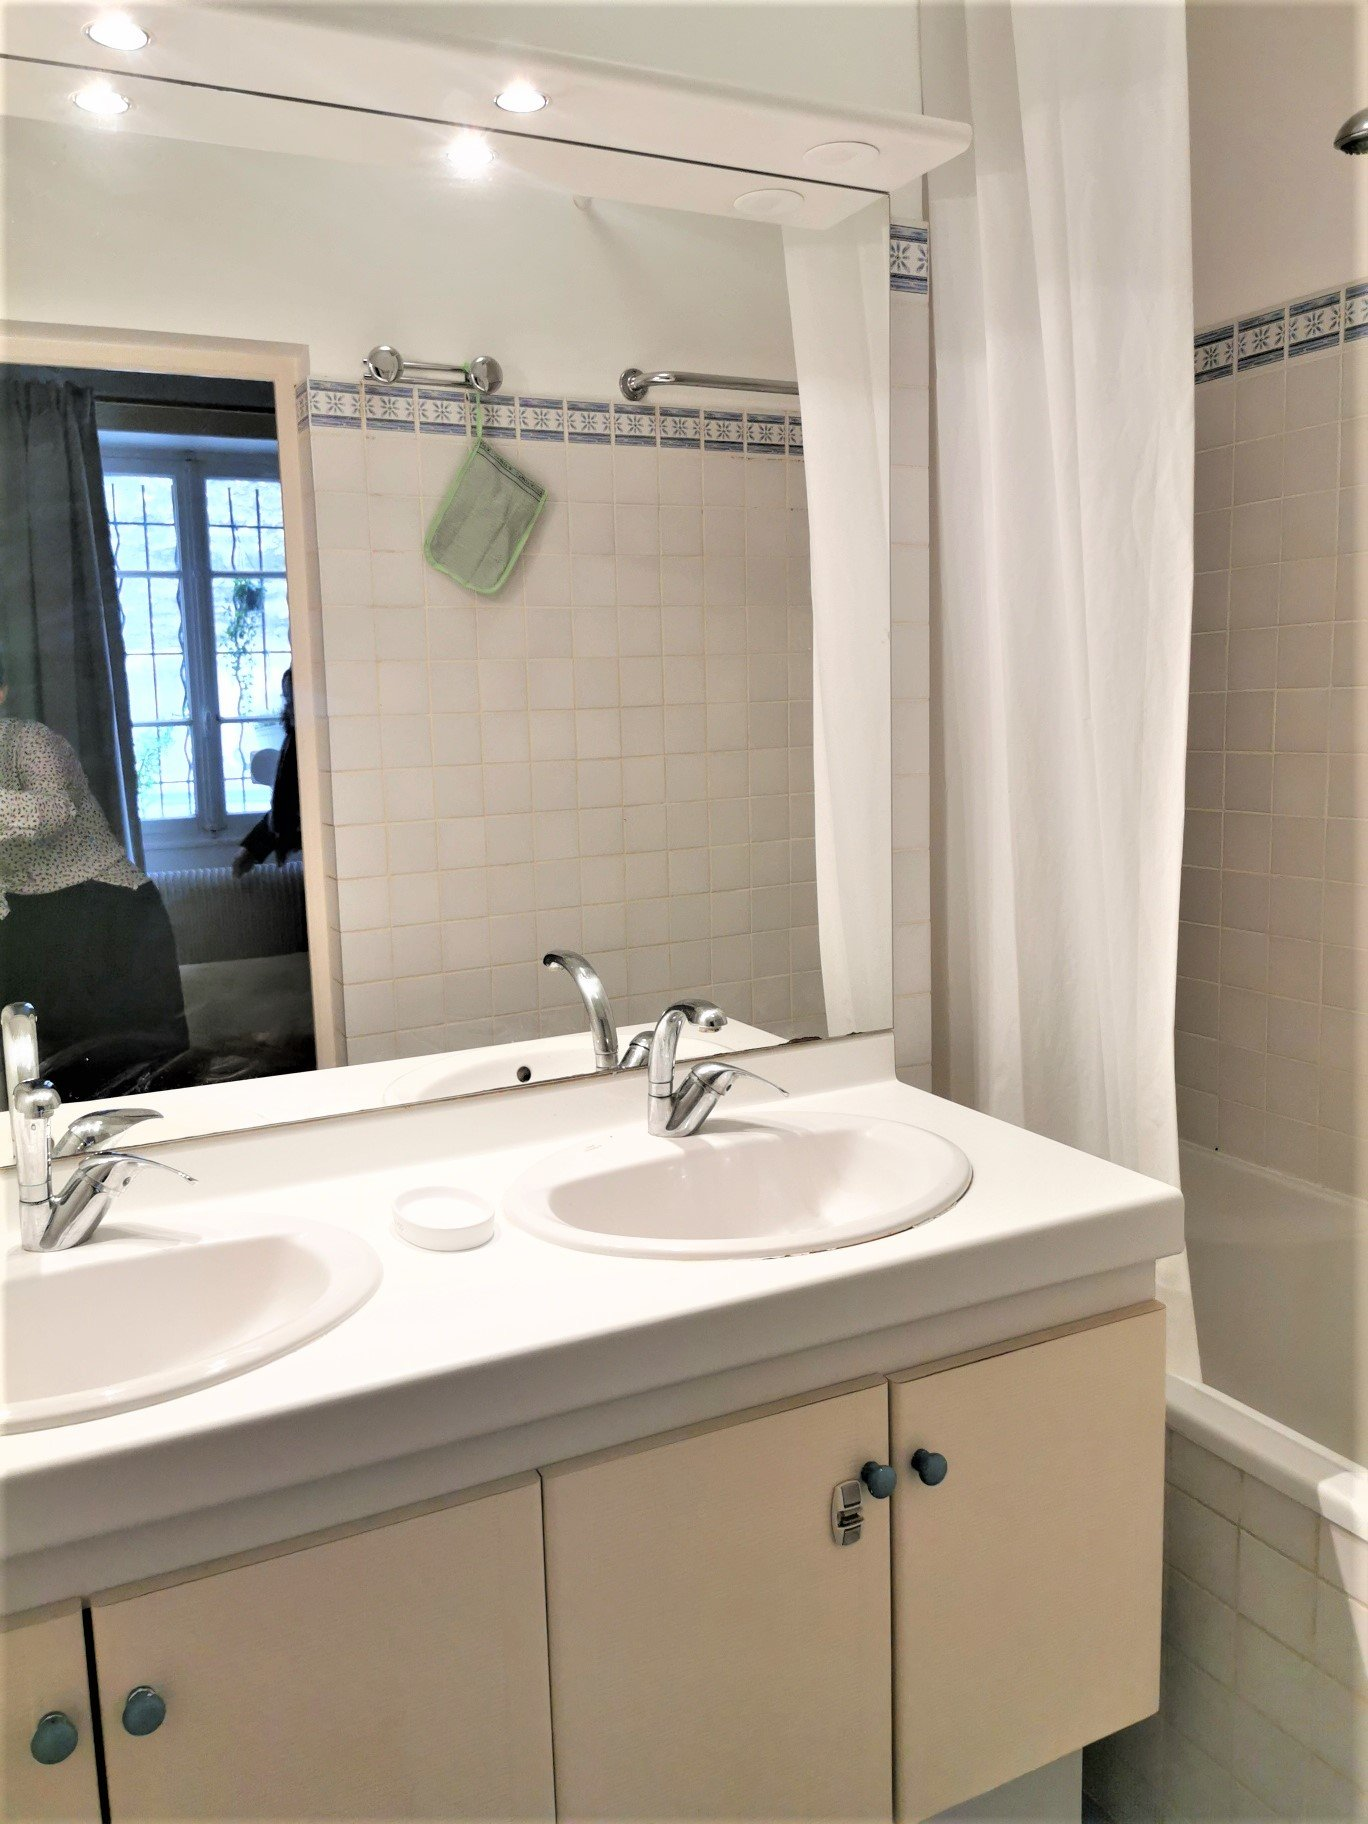 Rental Apartment - Paris 16th (Paris 16ème) Porte-Dauphine